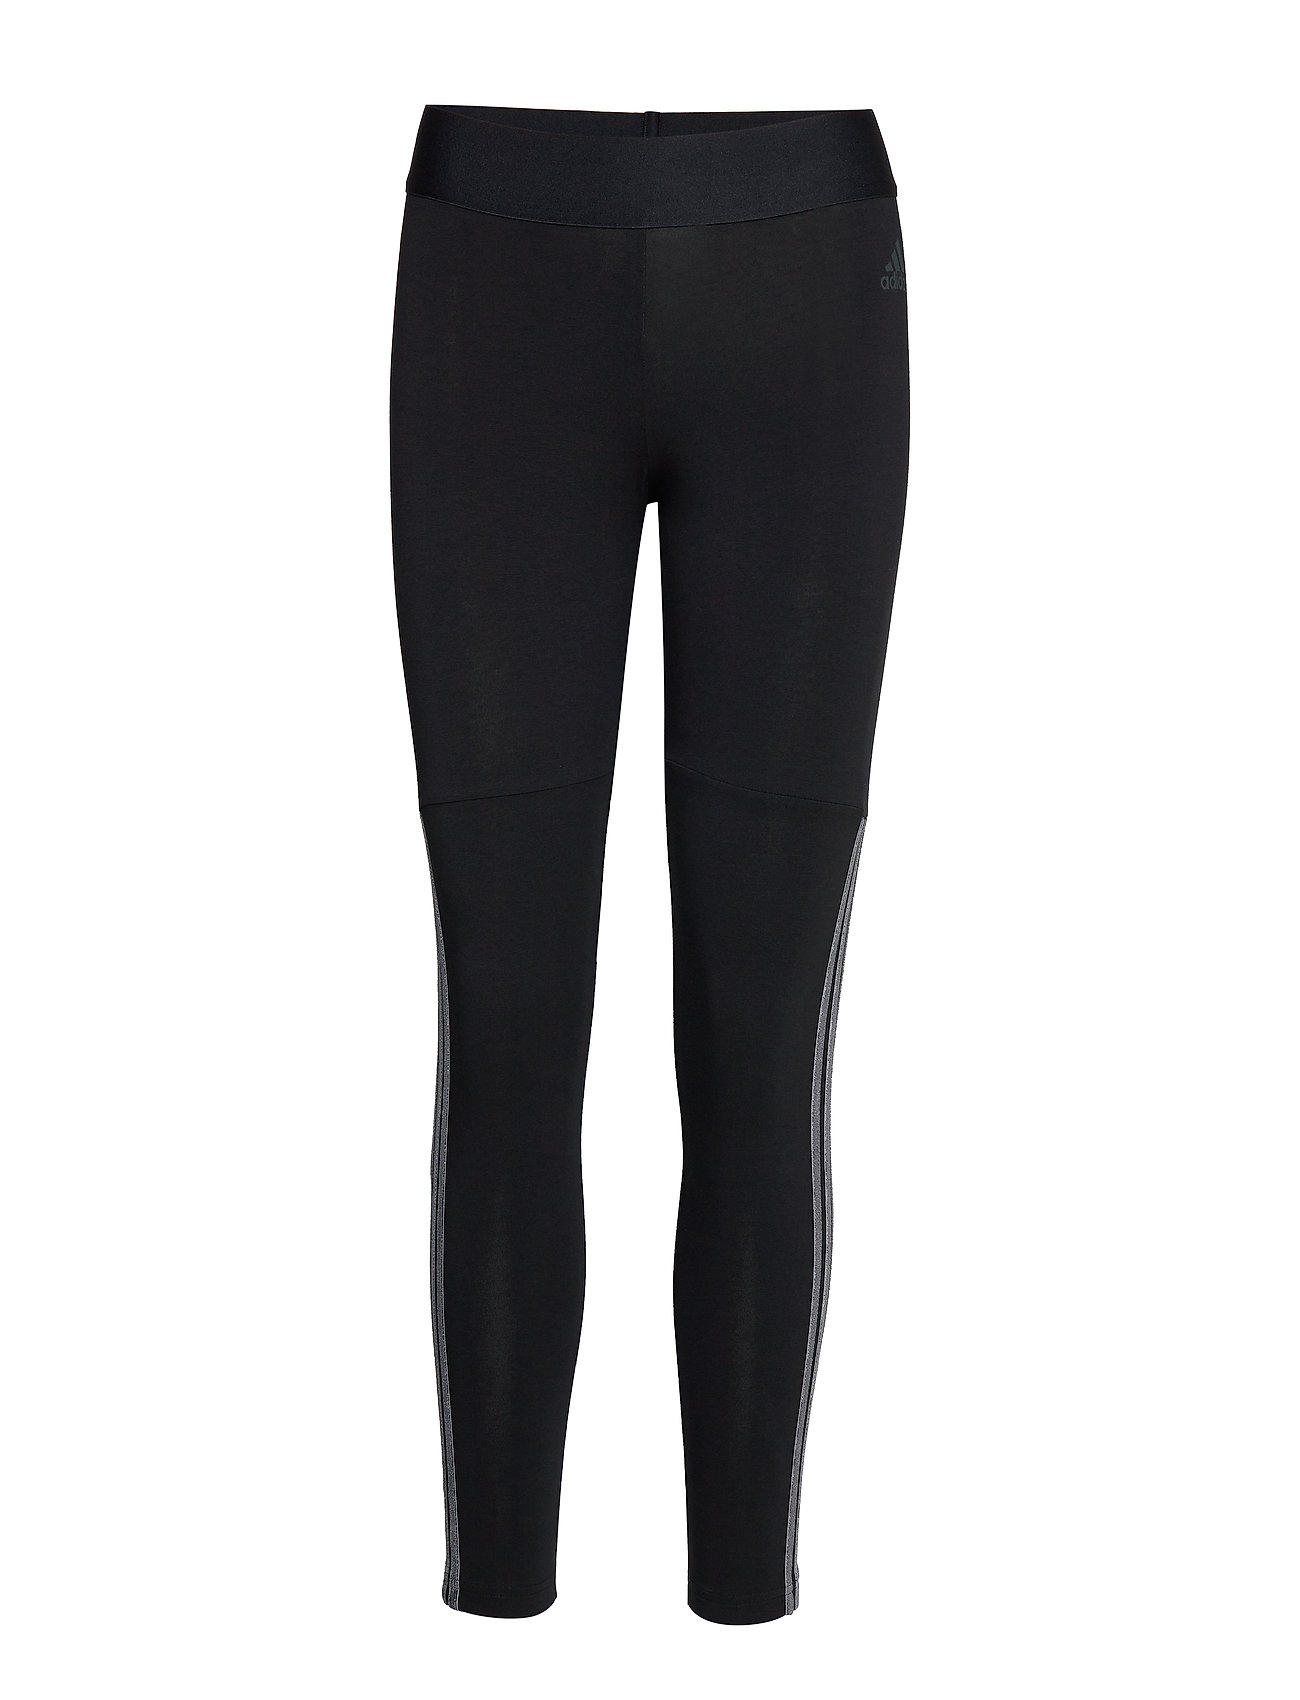 adidas Performance W SID V3S TIGHT - BLACK